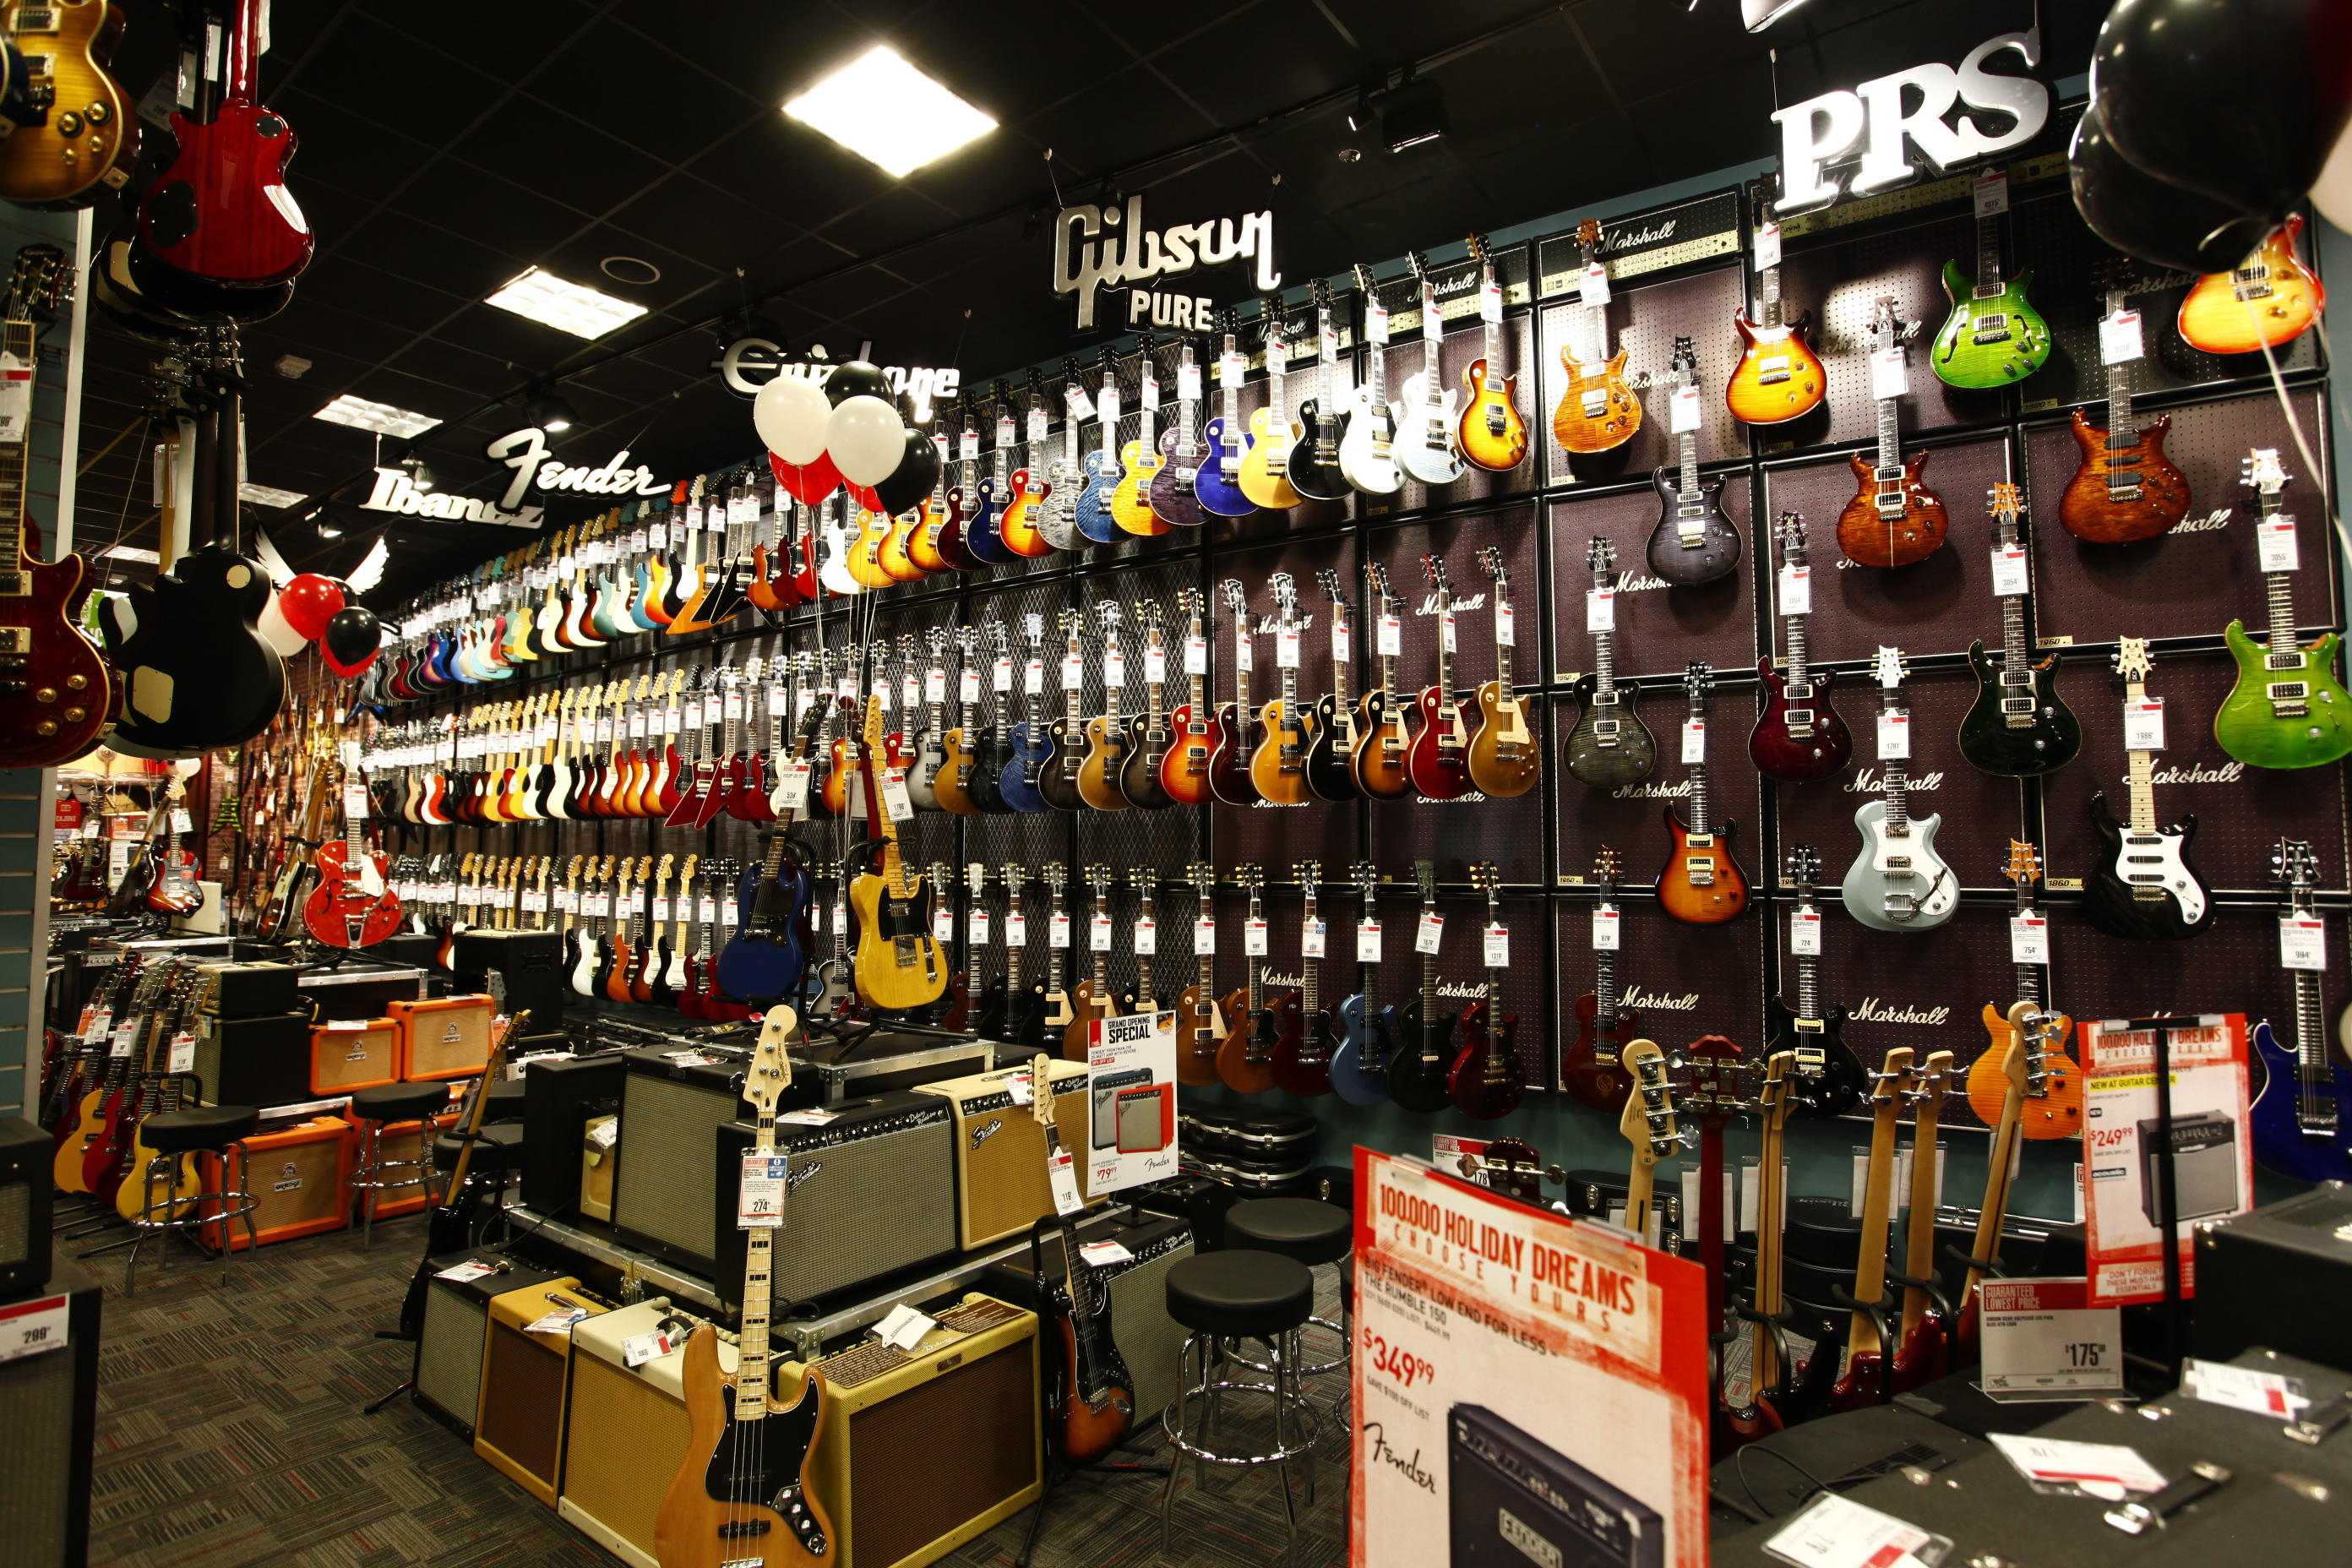 Guitar Center San Francisco bukahatene.ml With a history going back to , Guitar Center San Francisco is proud to have been a part of California's music community for over thirty years. We're located in the heart of the city, near San Francisco Toyota on Van Ness Avenue, with talented and expert staff ready to help you out with advice, rentals, service, lessons and more.